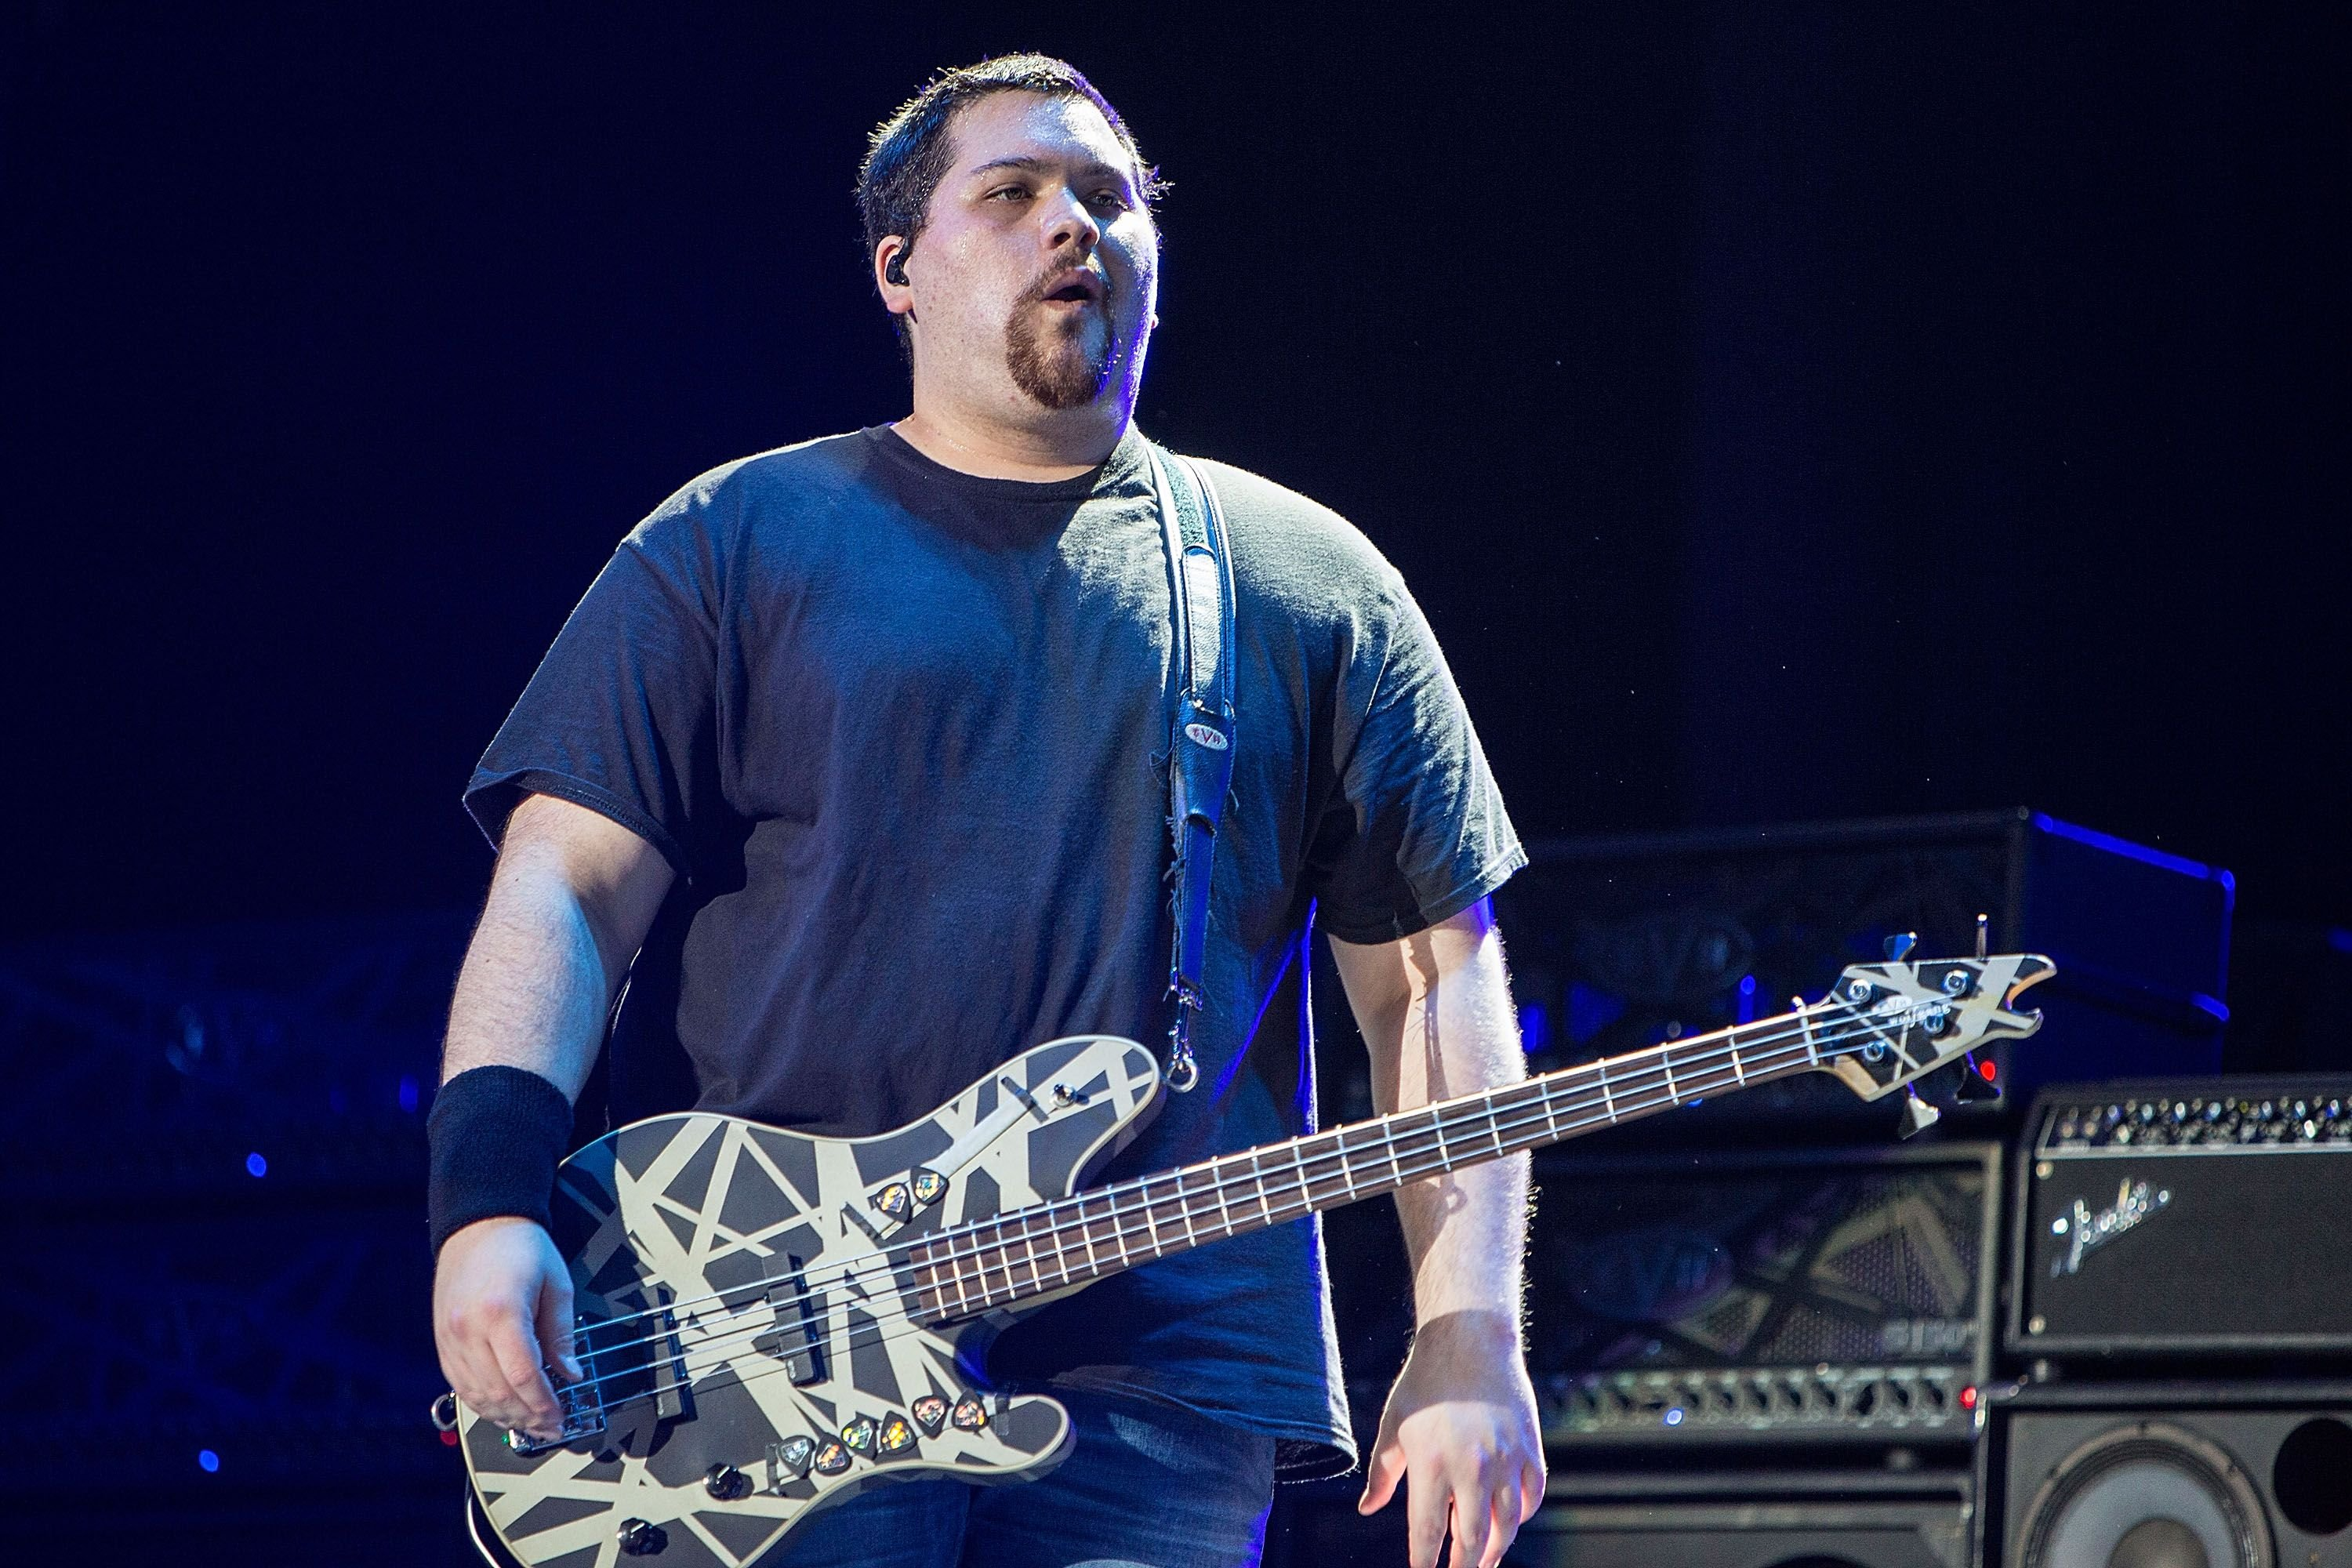 Wolfgang Van Halen performs on stage at theSleep Train Amphitheatre on September 30, 2015, in Chula Vista, California | Photo: Daniel Knighton/Getty Images